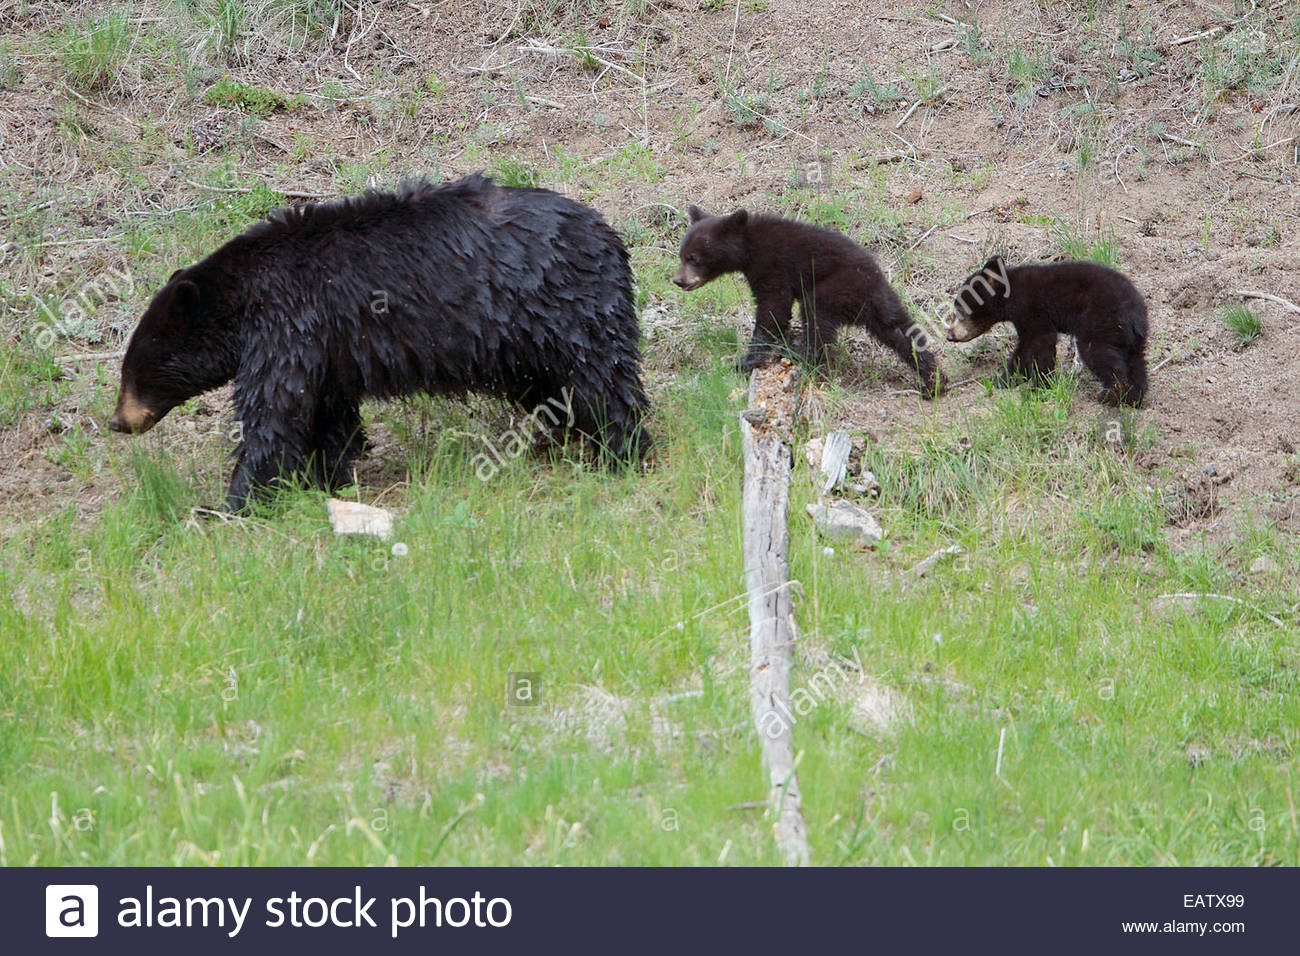 A black bear family follow each other closely. - Stock Image